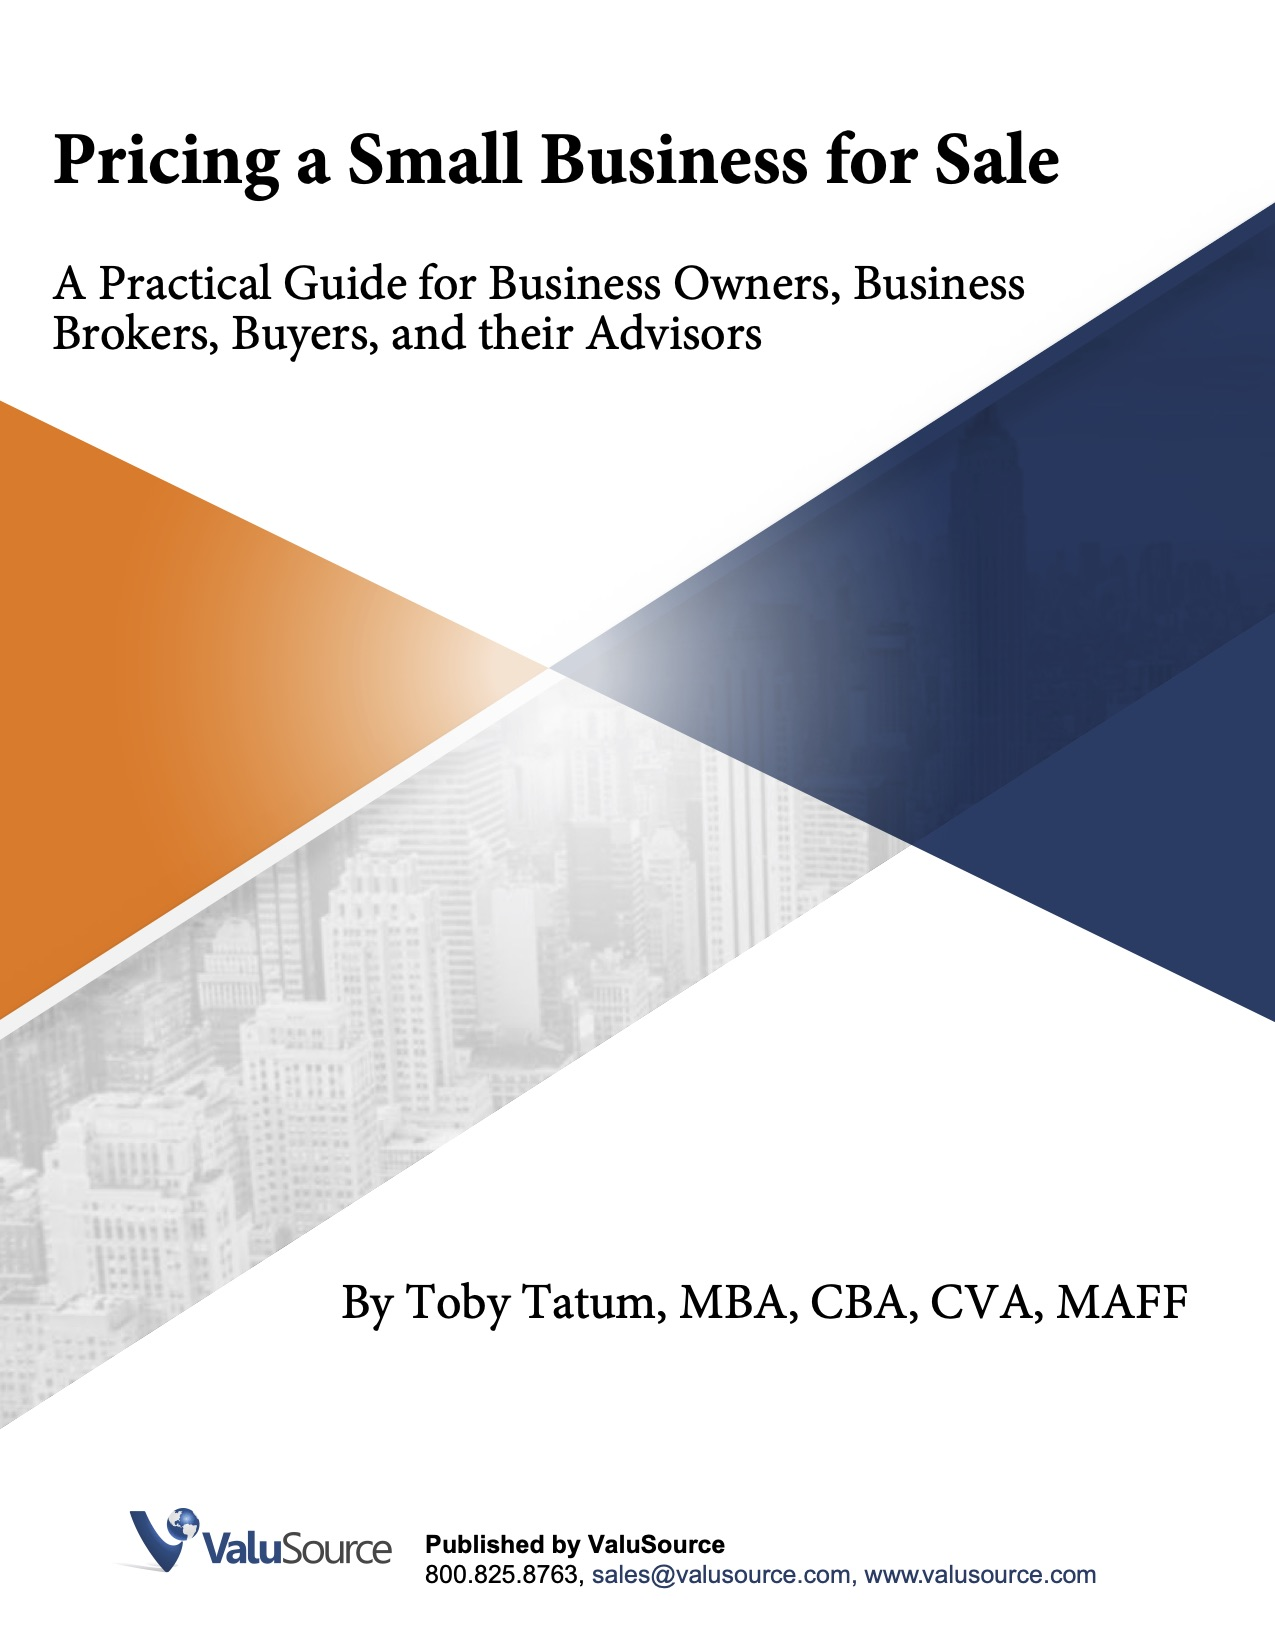 NEW Pricing a Small Business Cover Nov 2020